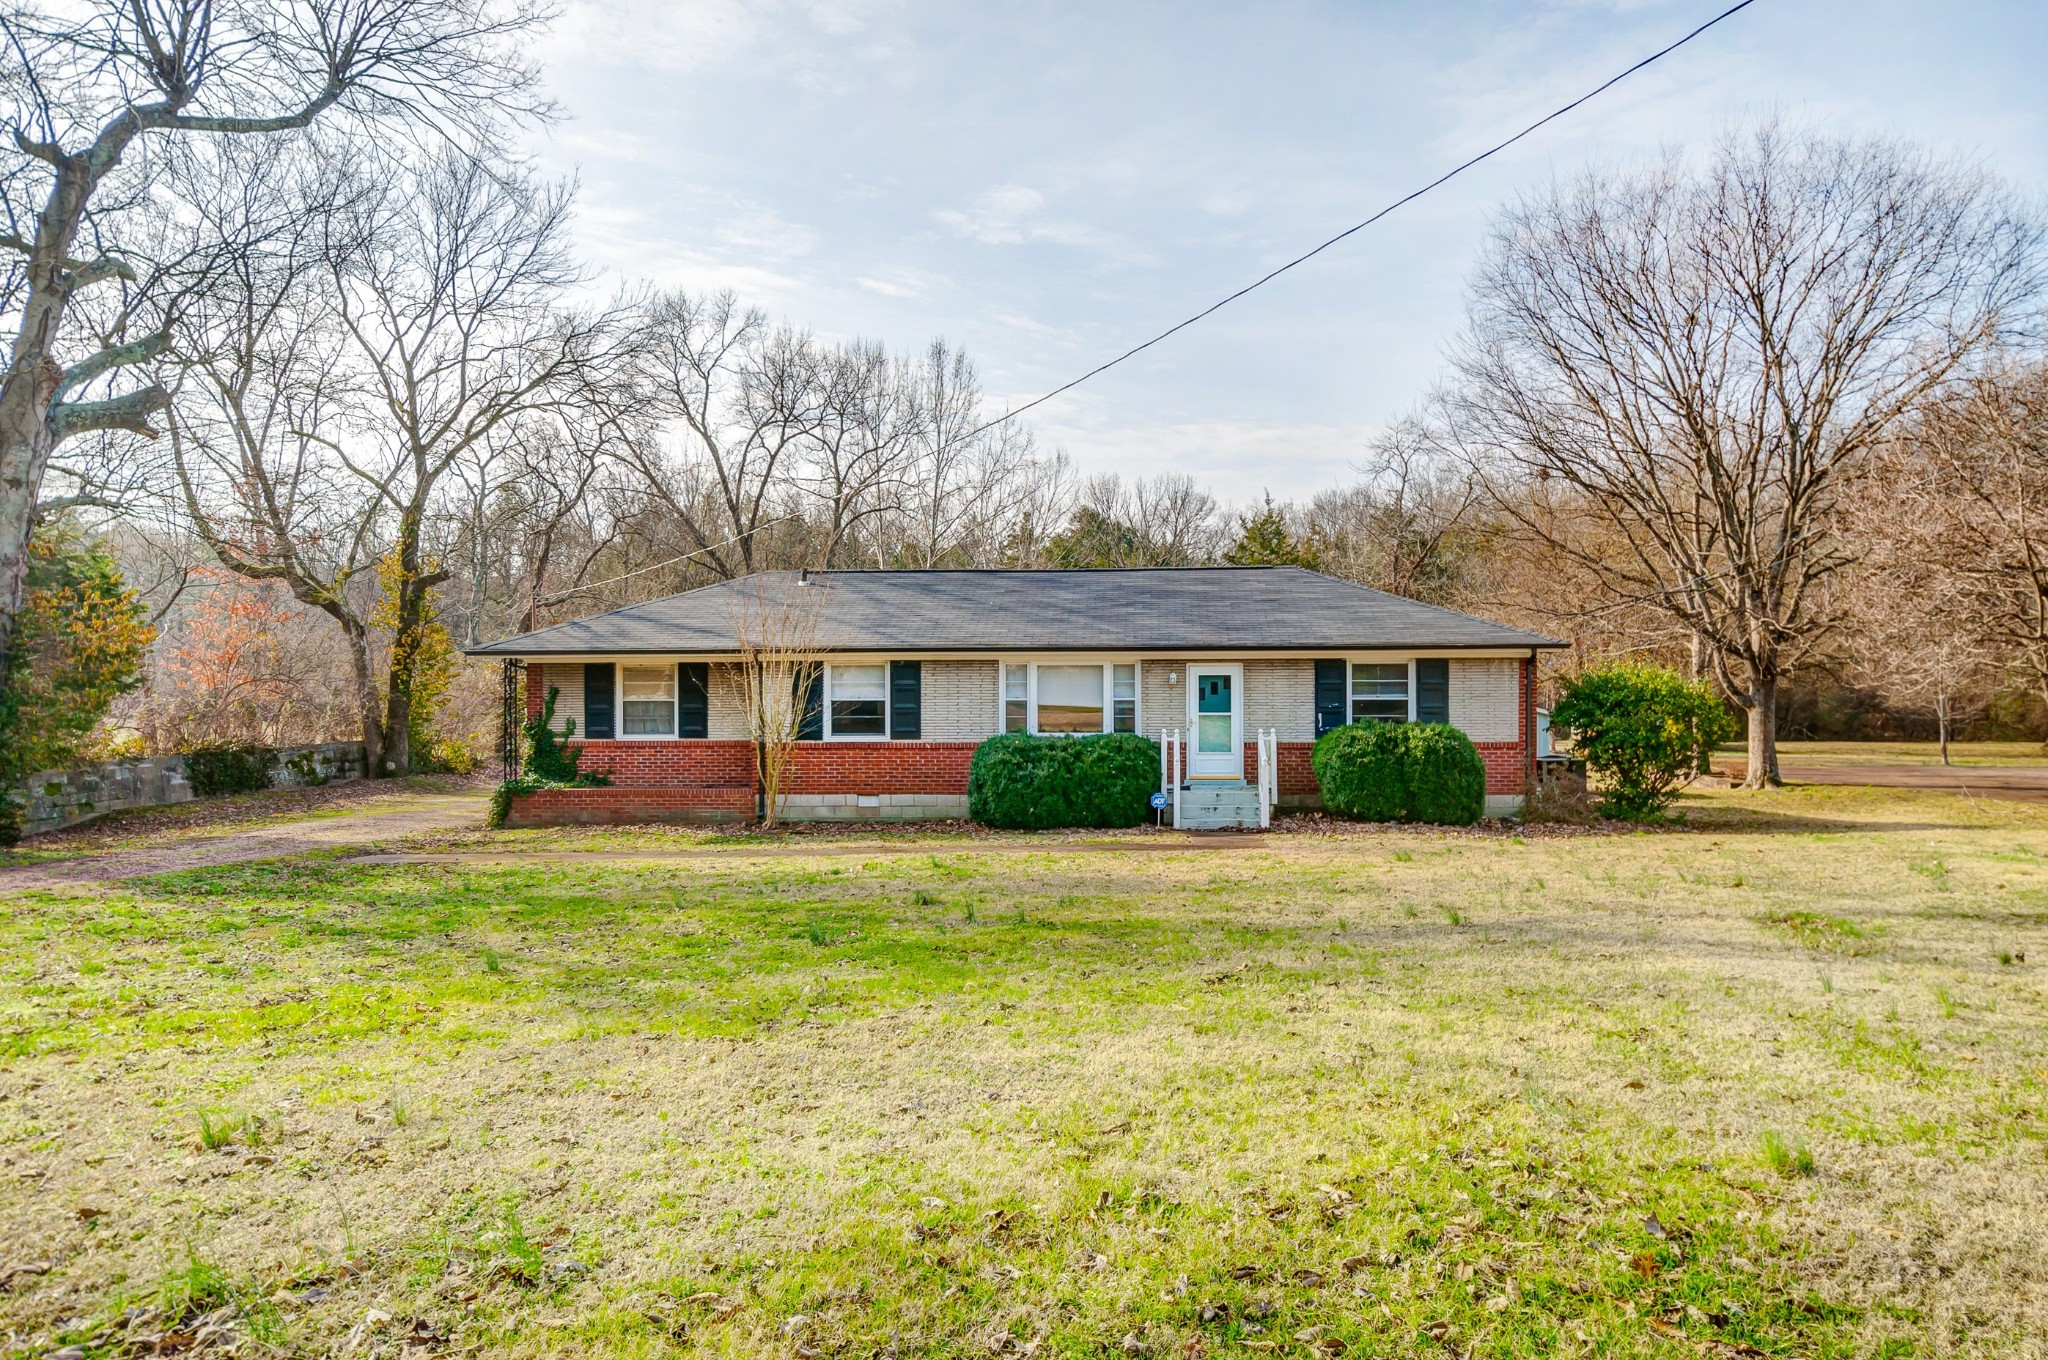 809 Bresslyn Rd, Nashville, TN 37205 - Nashville, TN real estate listing